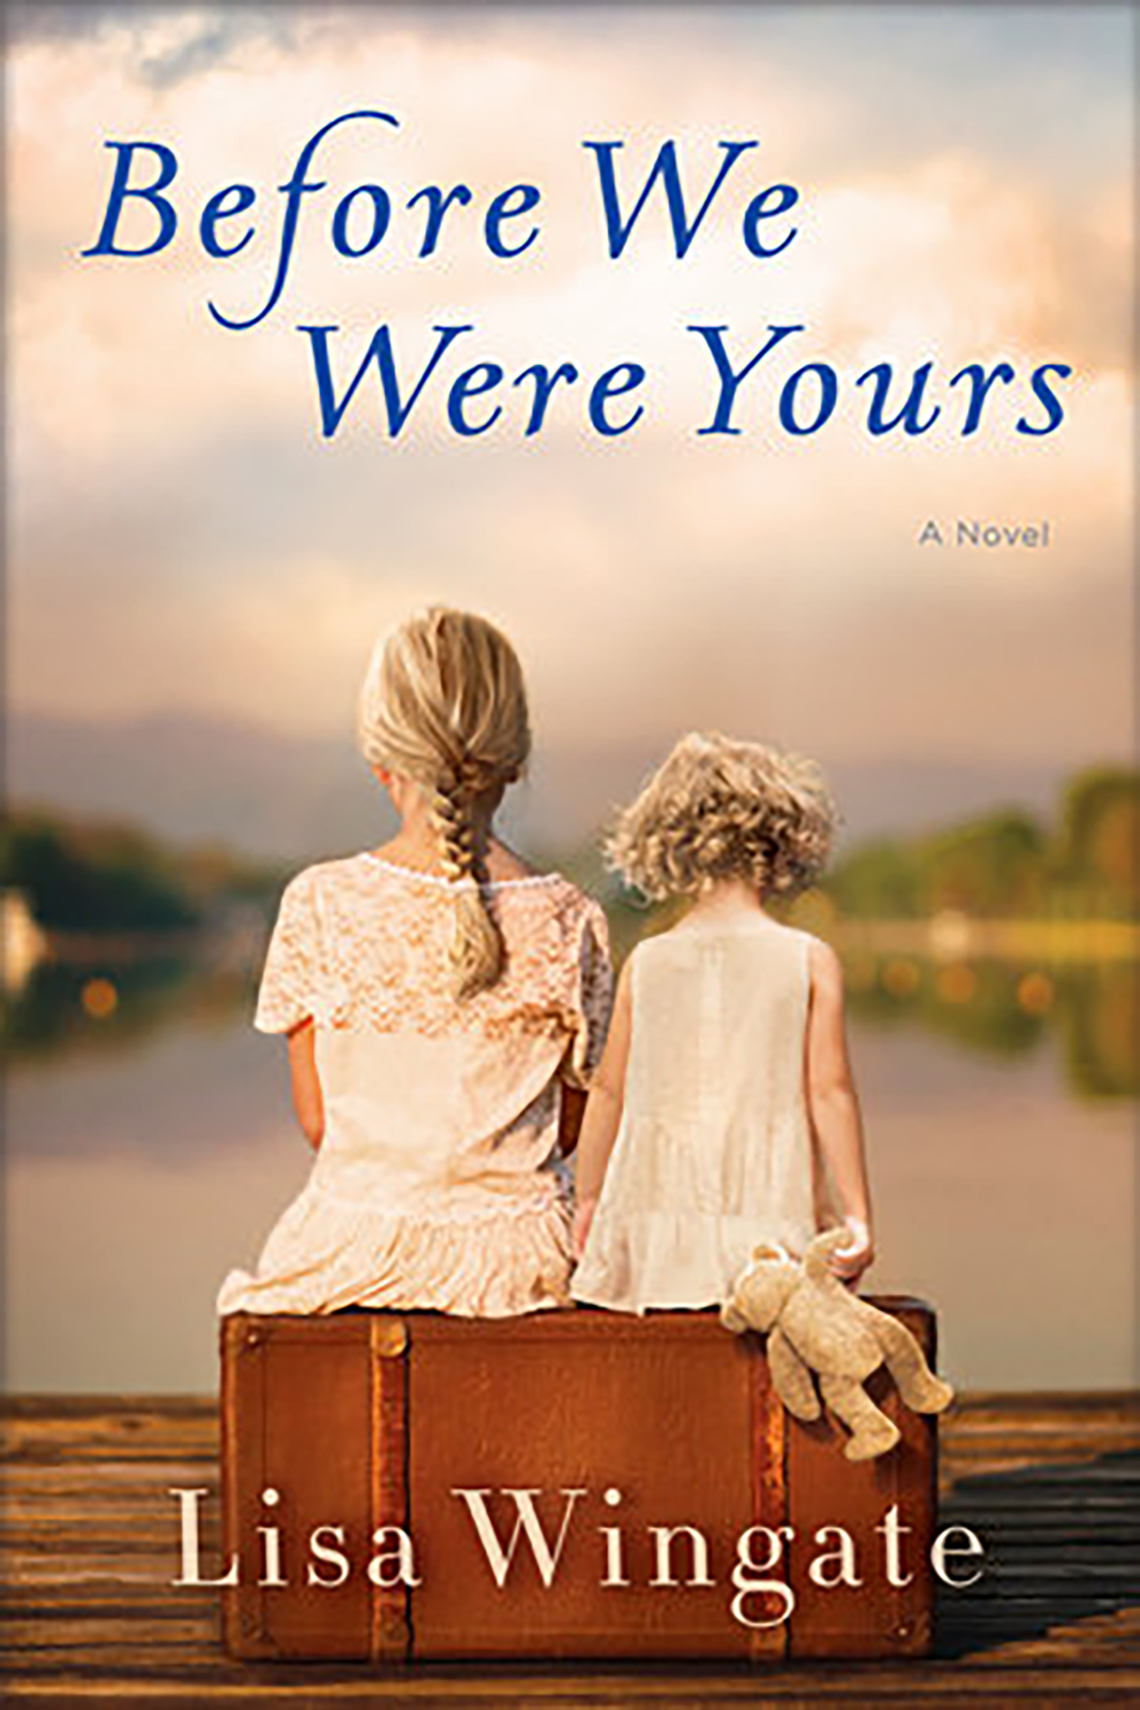 Before We Were Yours, By Lisa Winslow